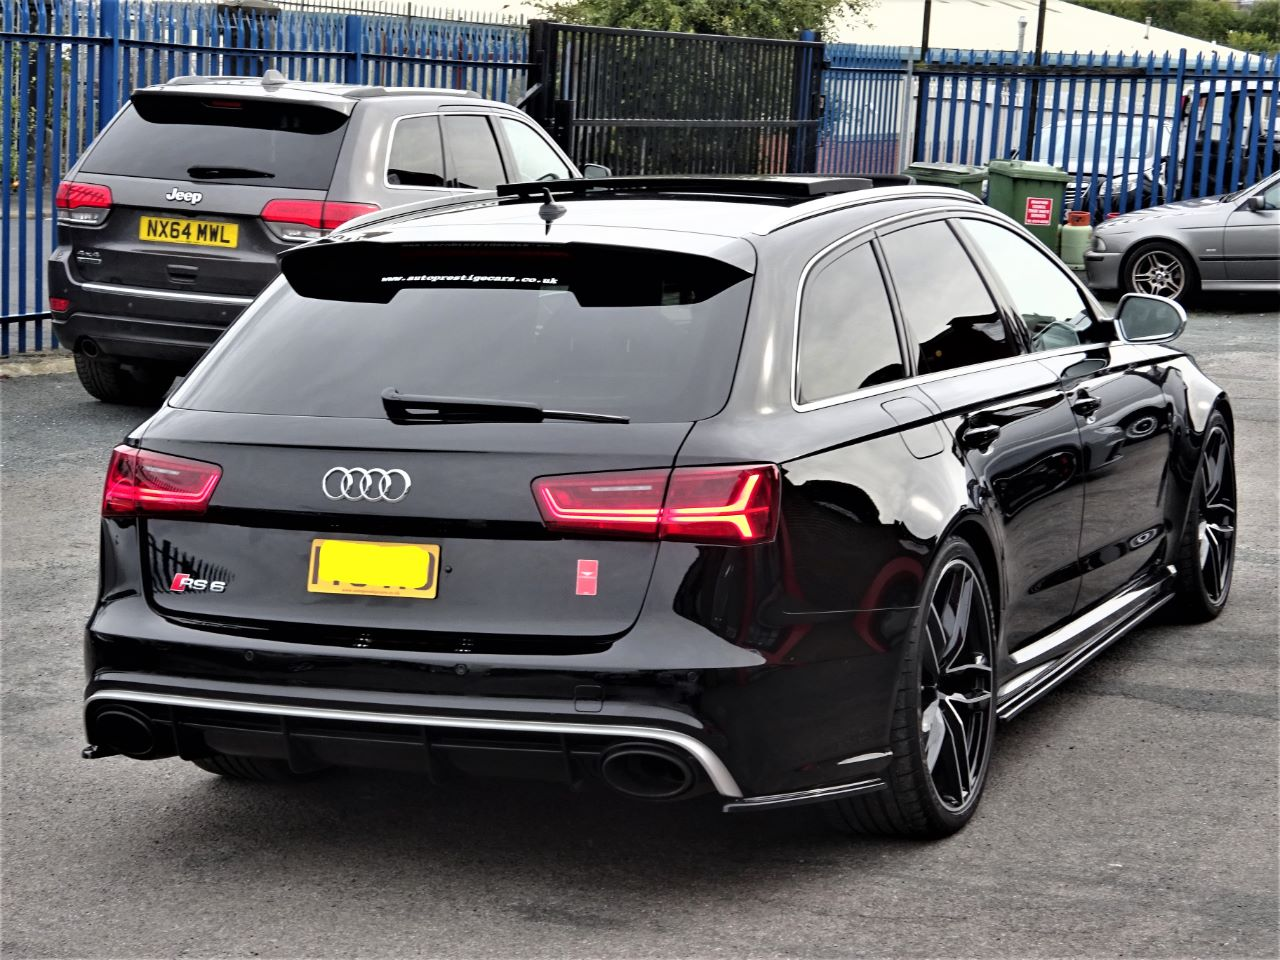 Audi RS6 4.0T FSI Quattro FACELIFT MODEL EVERY EXTRA AERO PACK 1 OWNER FASH BLACK DOUBLE GLAZING GLASS Estate Petrol Black